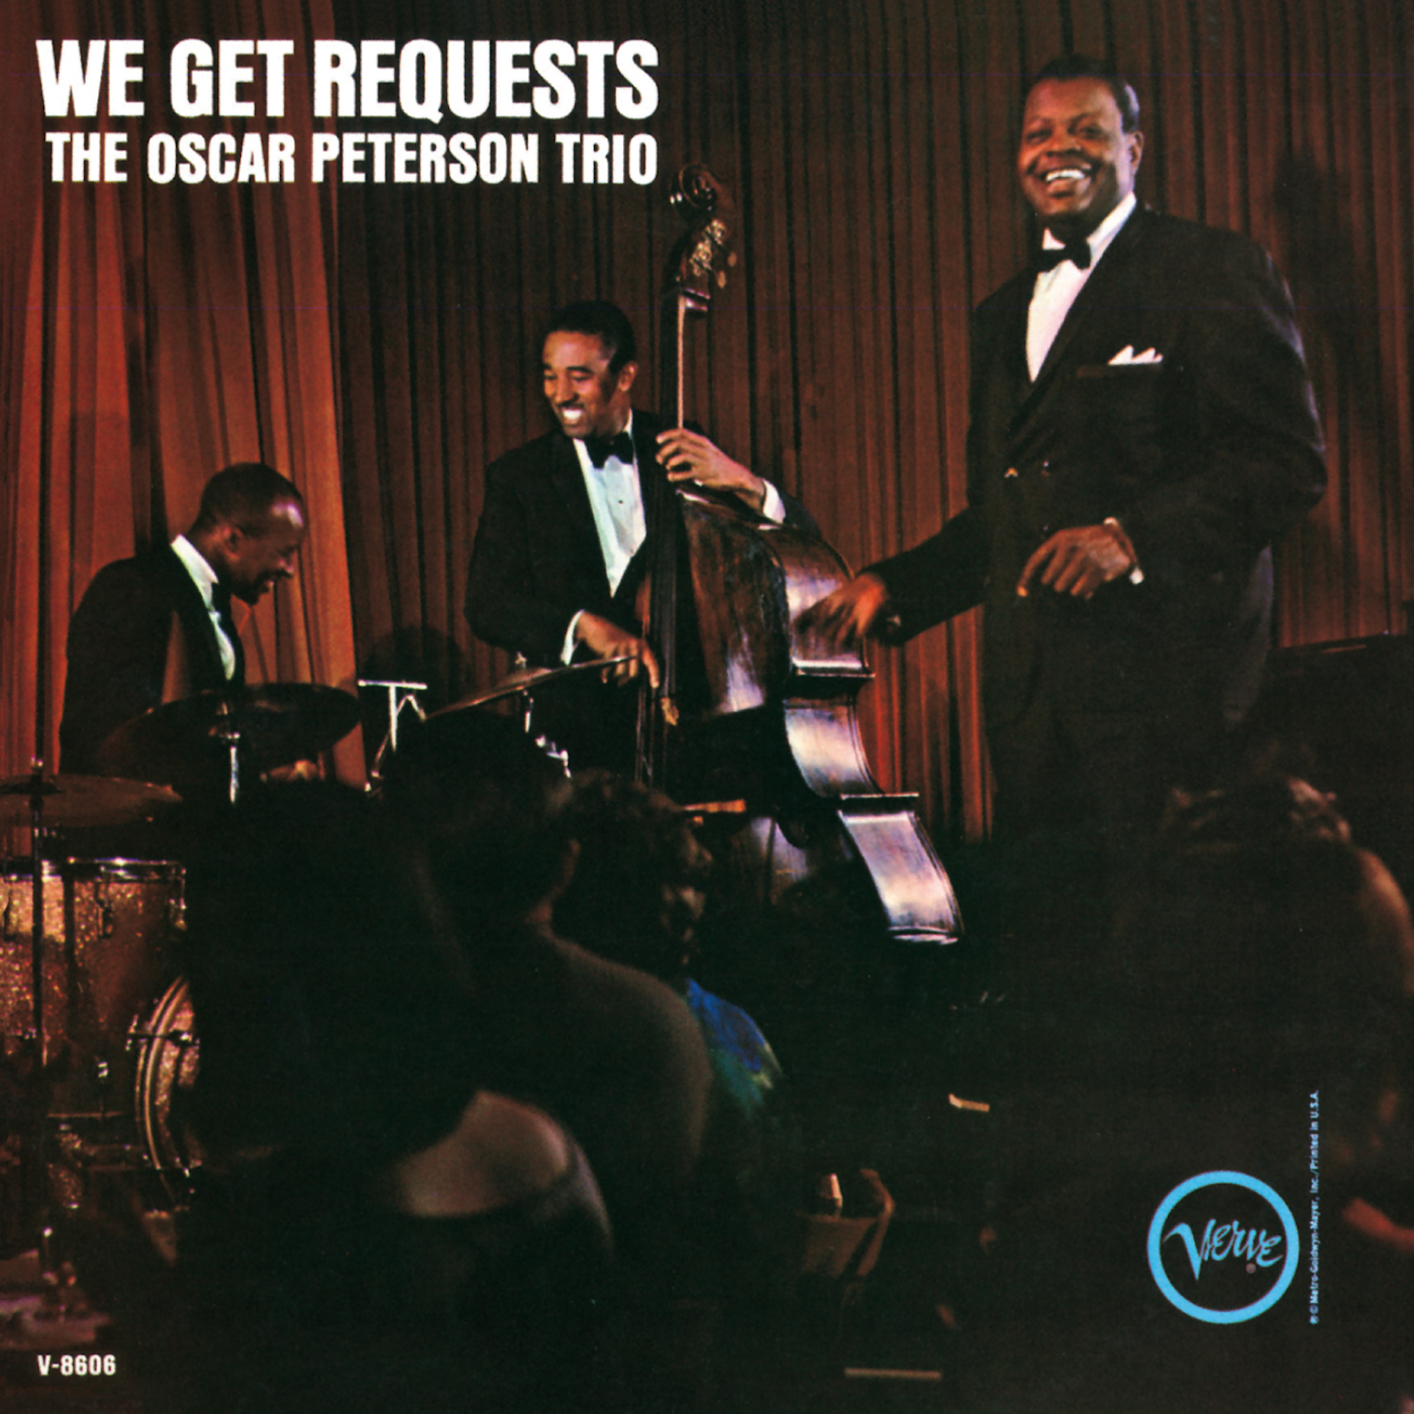 Jazz Round Midnight furthermore 2014 also Porgy And Bess 2 Bonus Tracks additionally Gene Harris Yesterday Today Tomorrow as well The Oscar Peterson Trio We Get Requests. on oscar peterson the jazz soul of